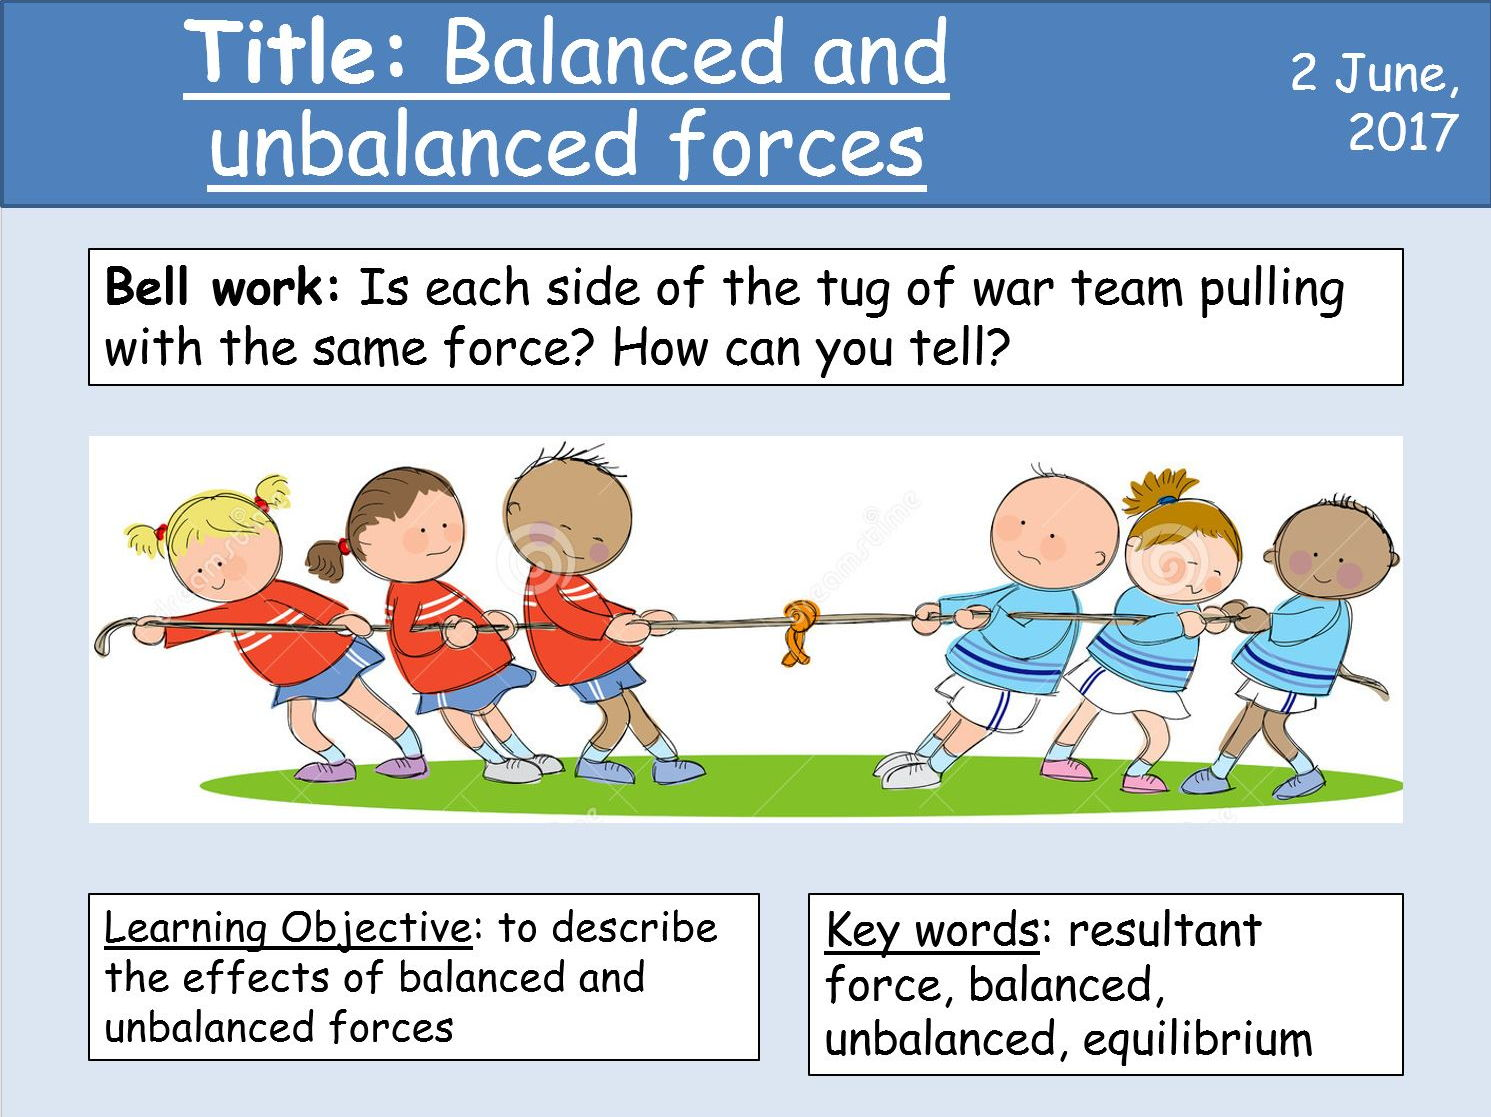 Worksheets Balanced And Unbalanced Forces Worksheet Cheatslist Free Worksheets For Kids